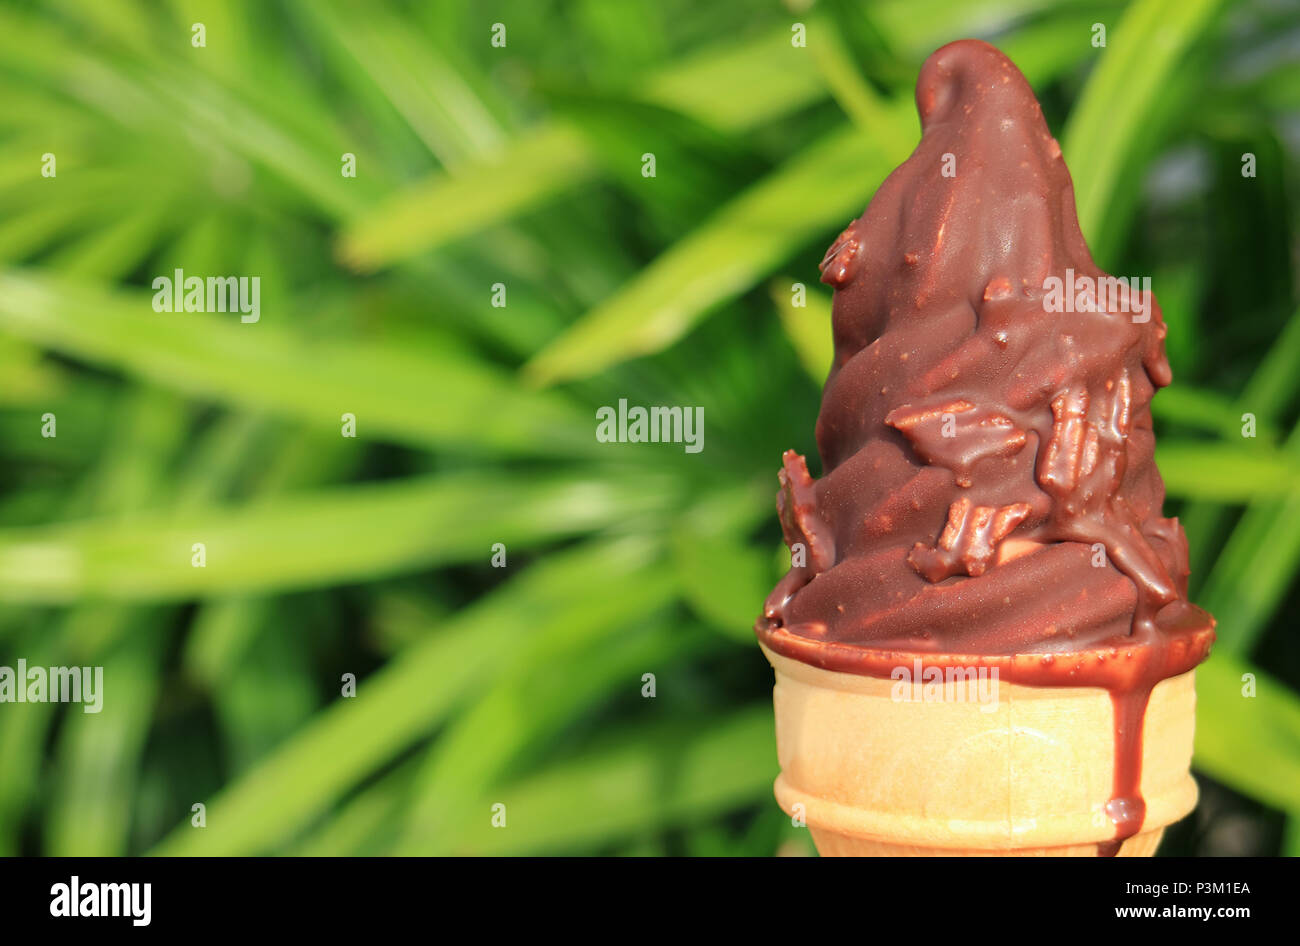 Melting Chocolate Dipped Soft Serve Ice Cream Cone with Blurred Green Bush in Background - Stock Image